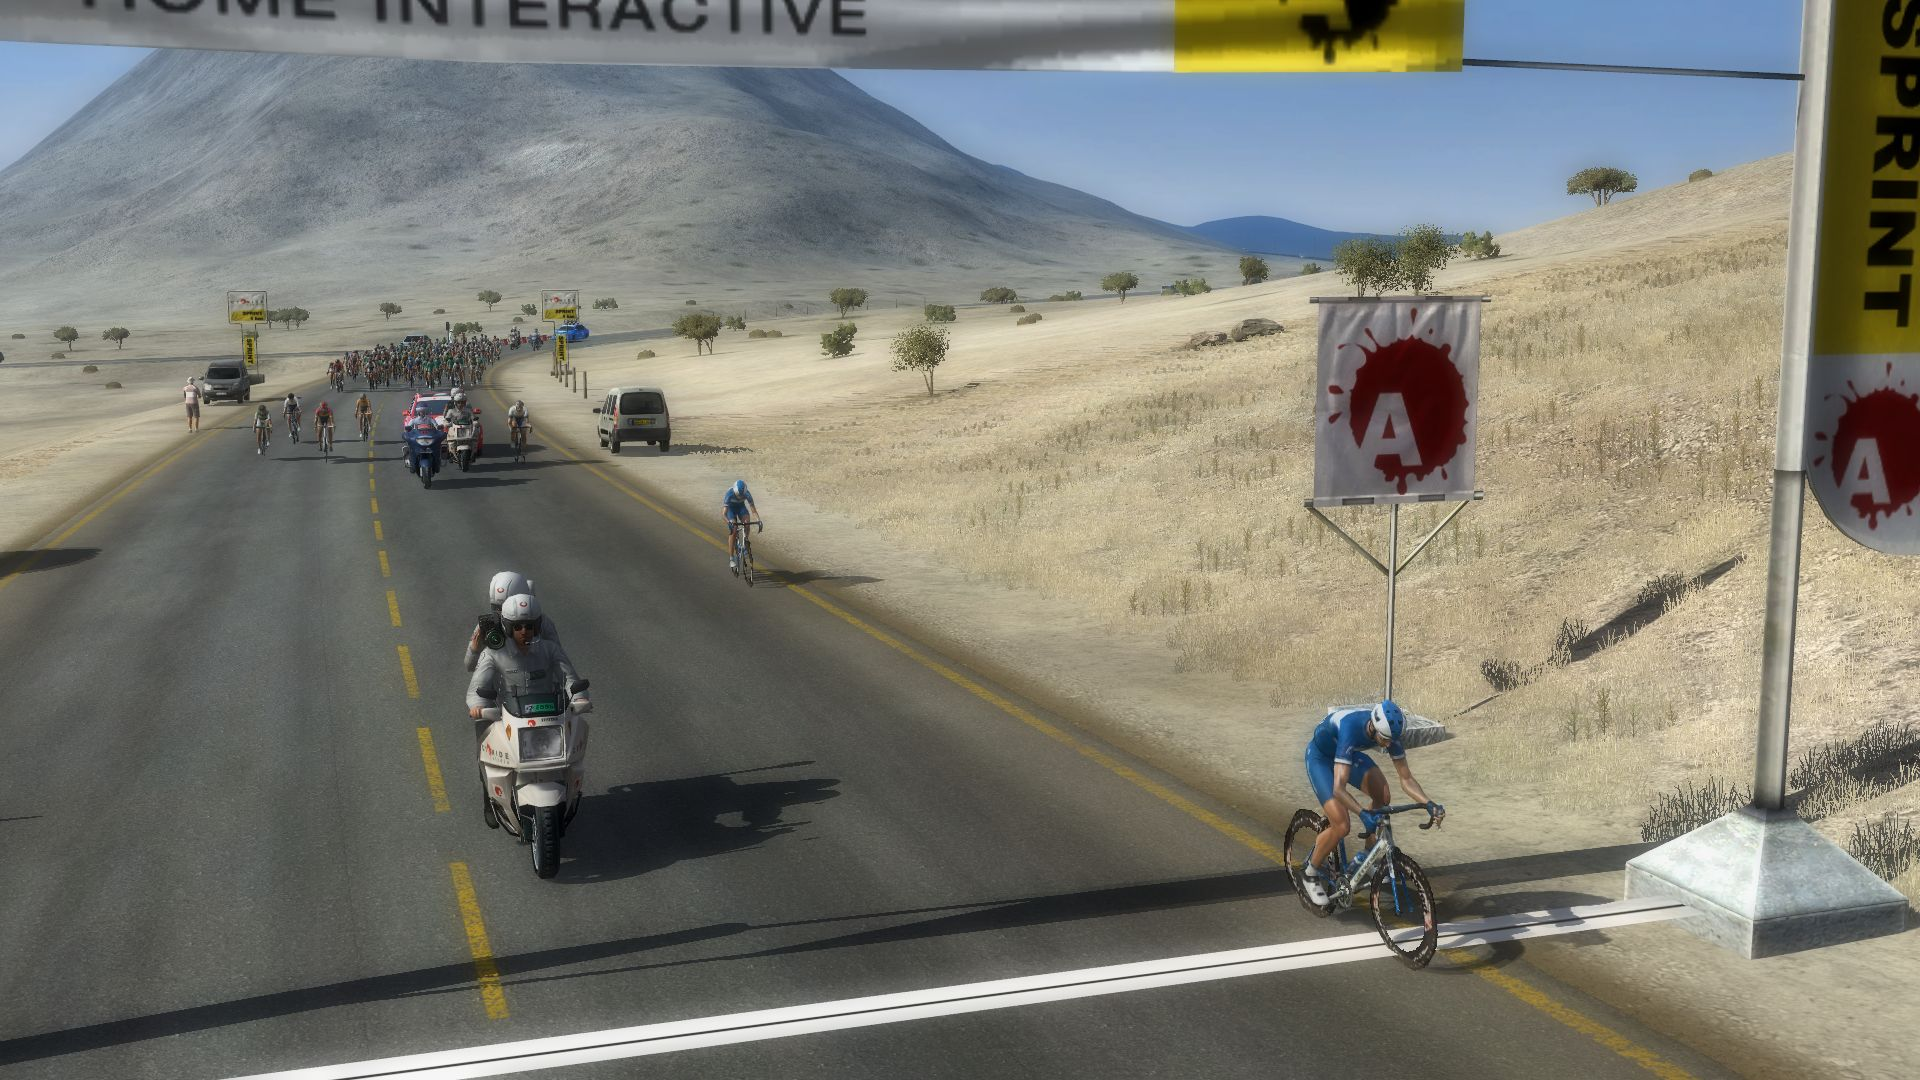 pcmdaily.com/images/mg/2019/Races/C2HC/Eritrea/TOES1%205.jpg